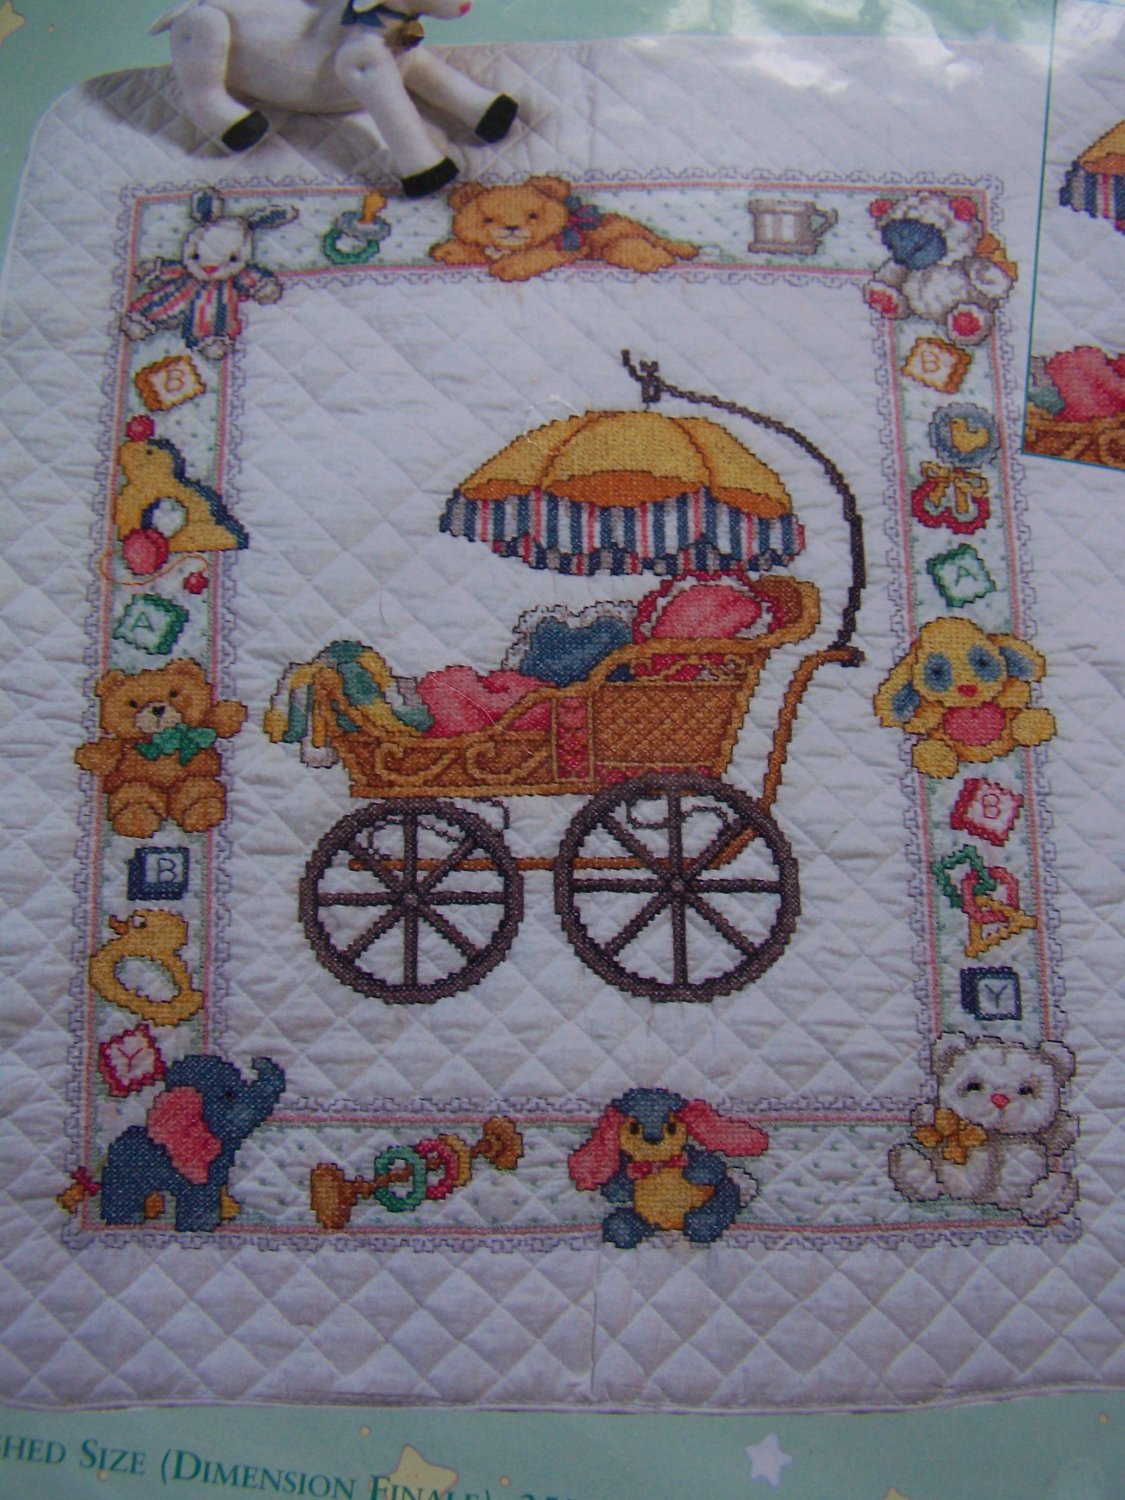 Needle Treasures Stamped Cross Stitch Baby Nursery Quilt Kit Blanket 04236